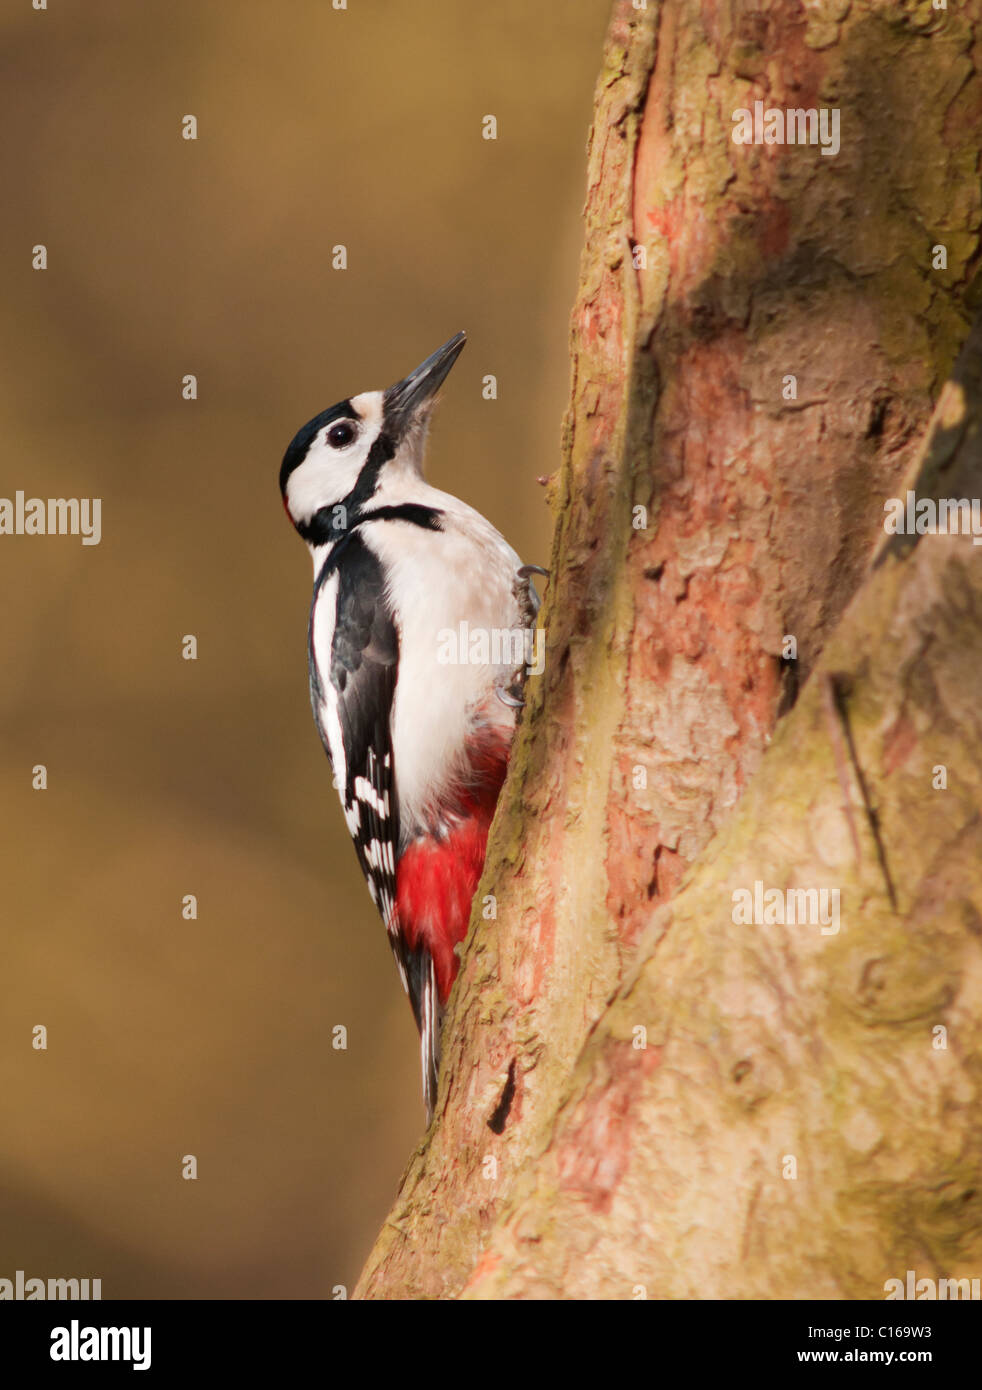 Great Spotted Woodpecker (Dendrocopos major) on tree trunk looking for insects - Stock Image